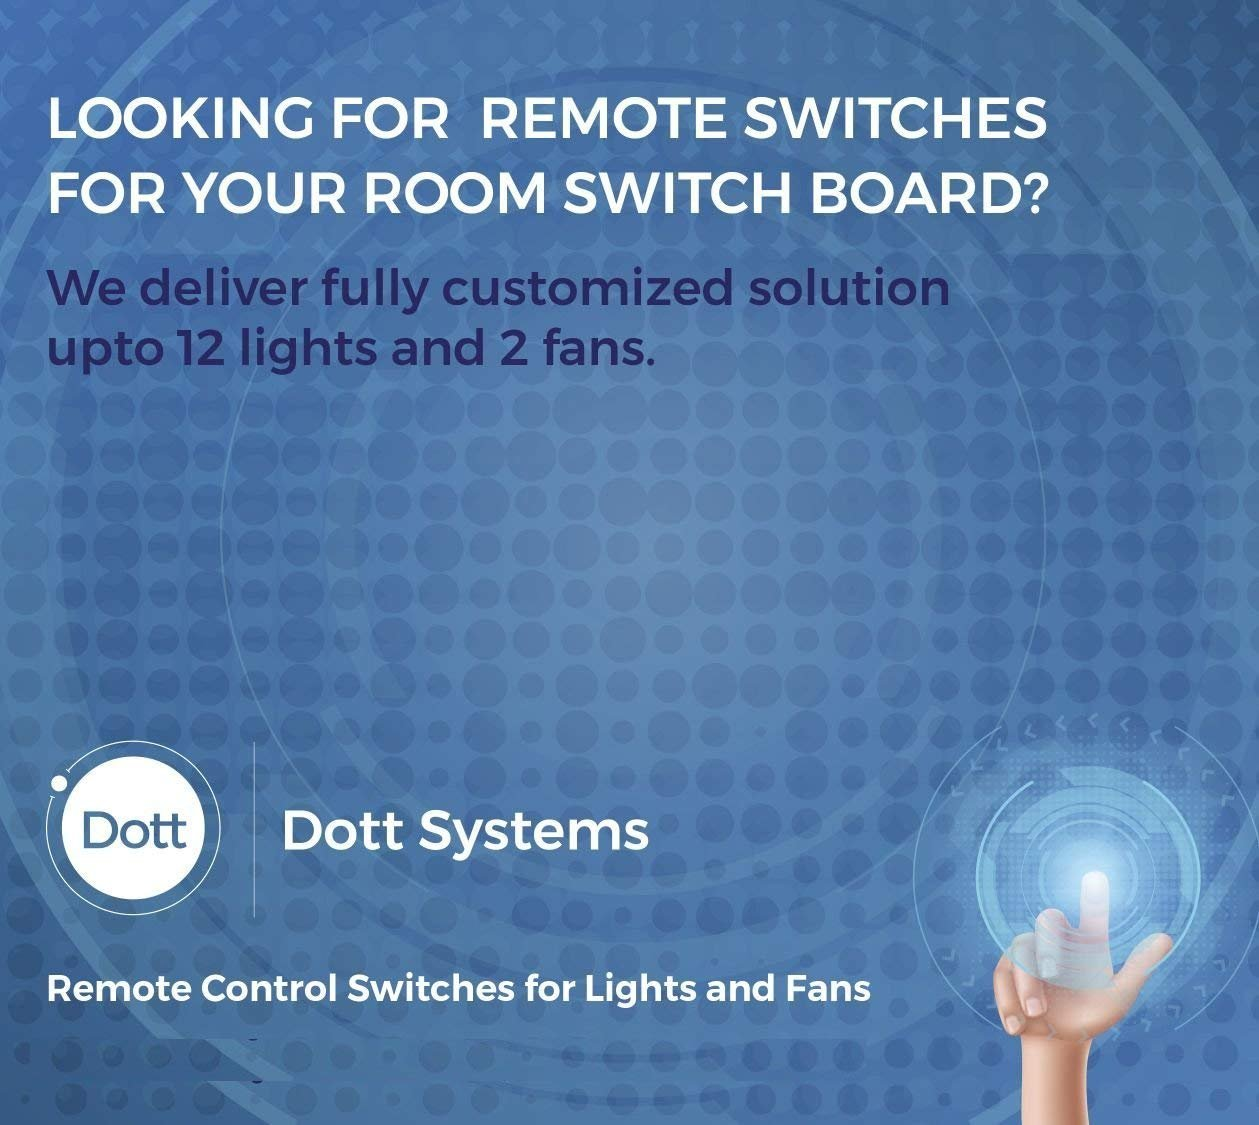 BIG i by Dott Systems Modular Remote Control Switches for 1 Light ...